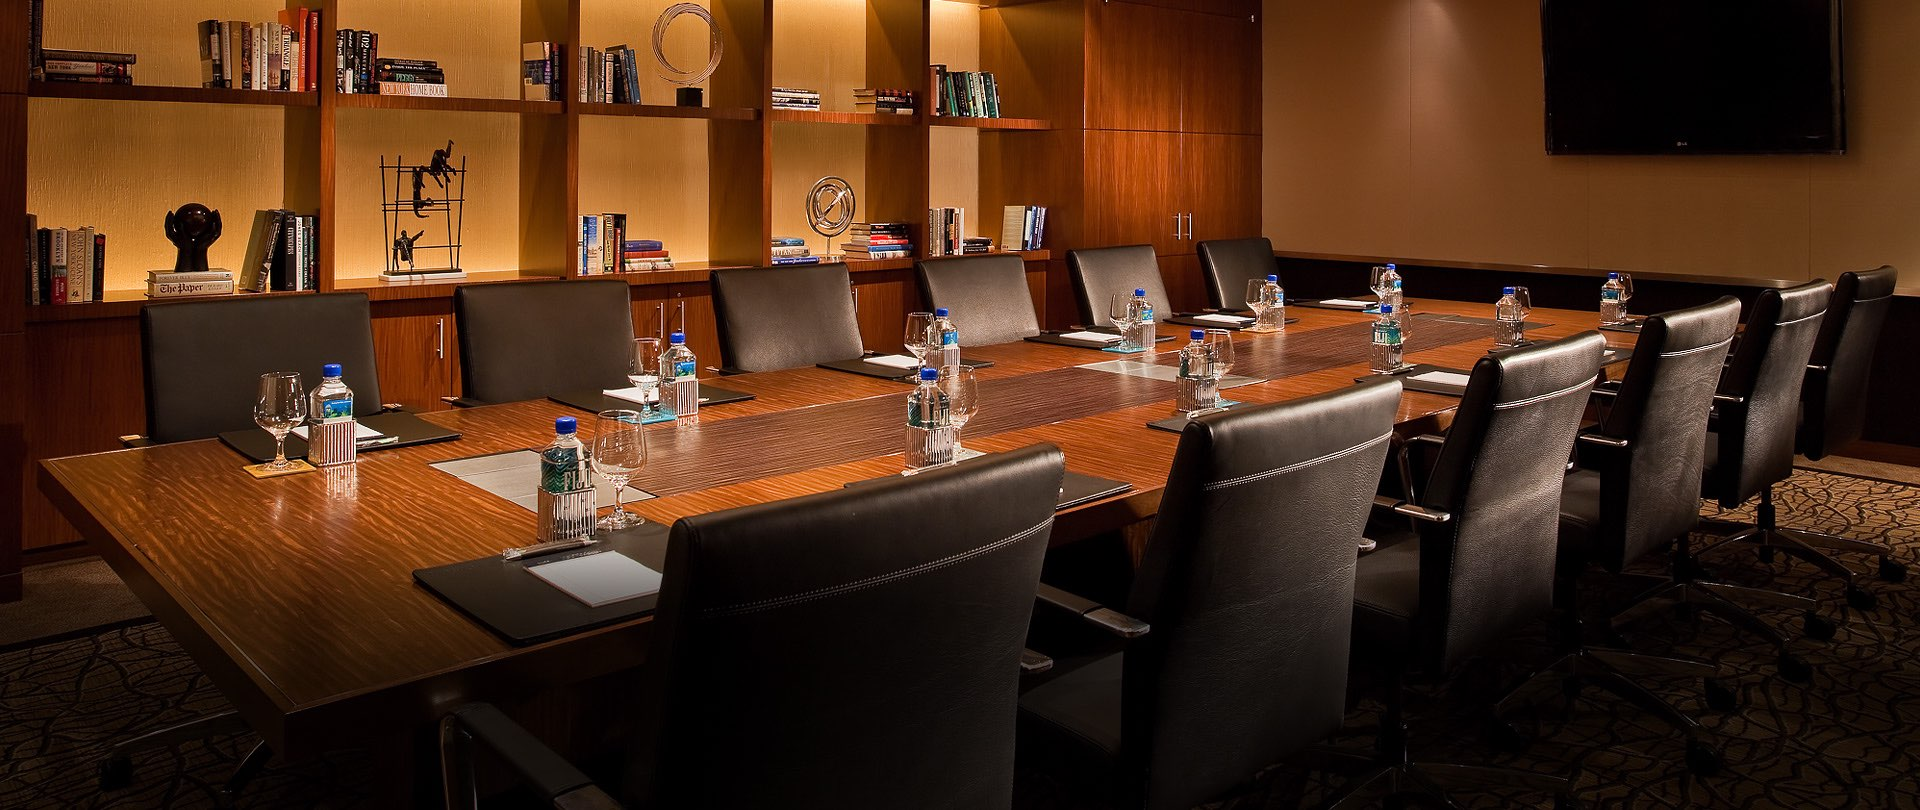 Conference room prepared for meeting